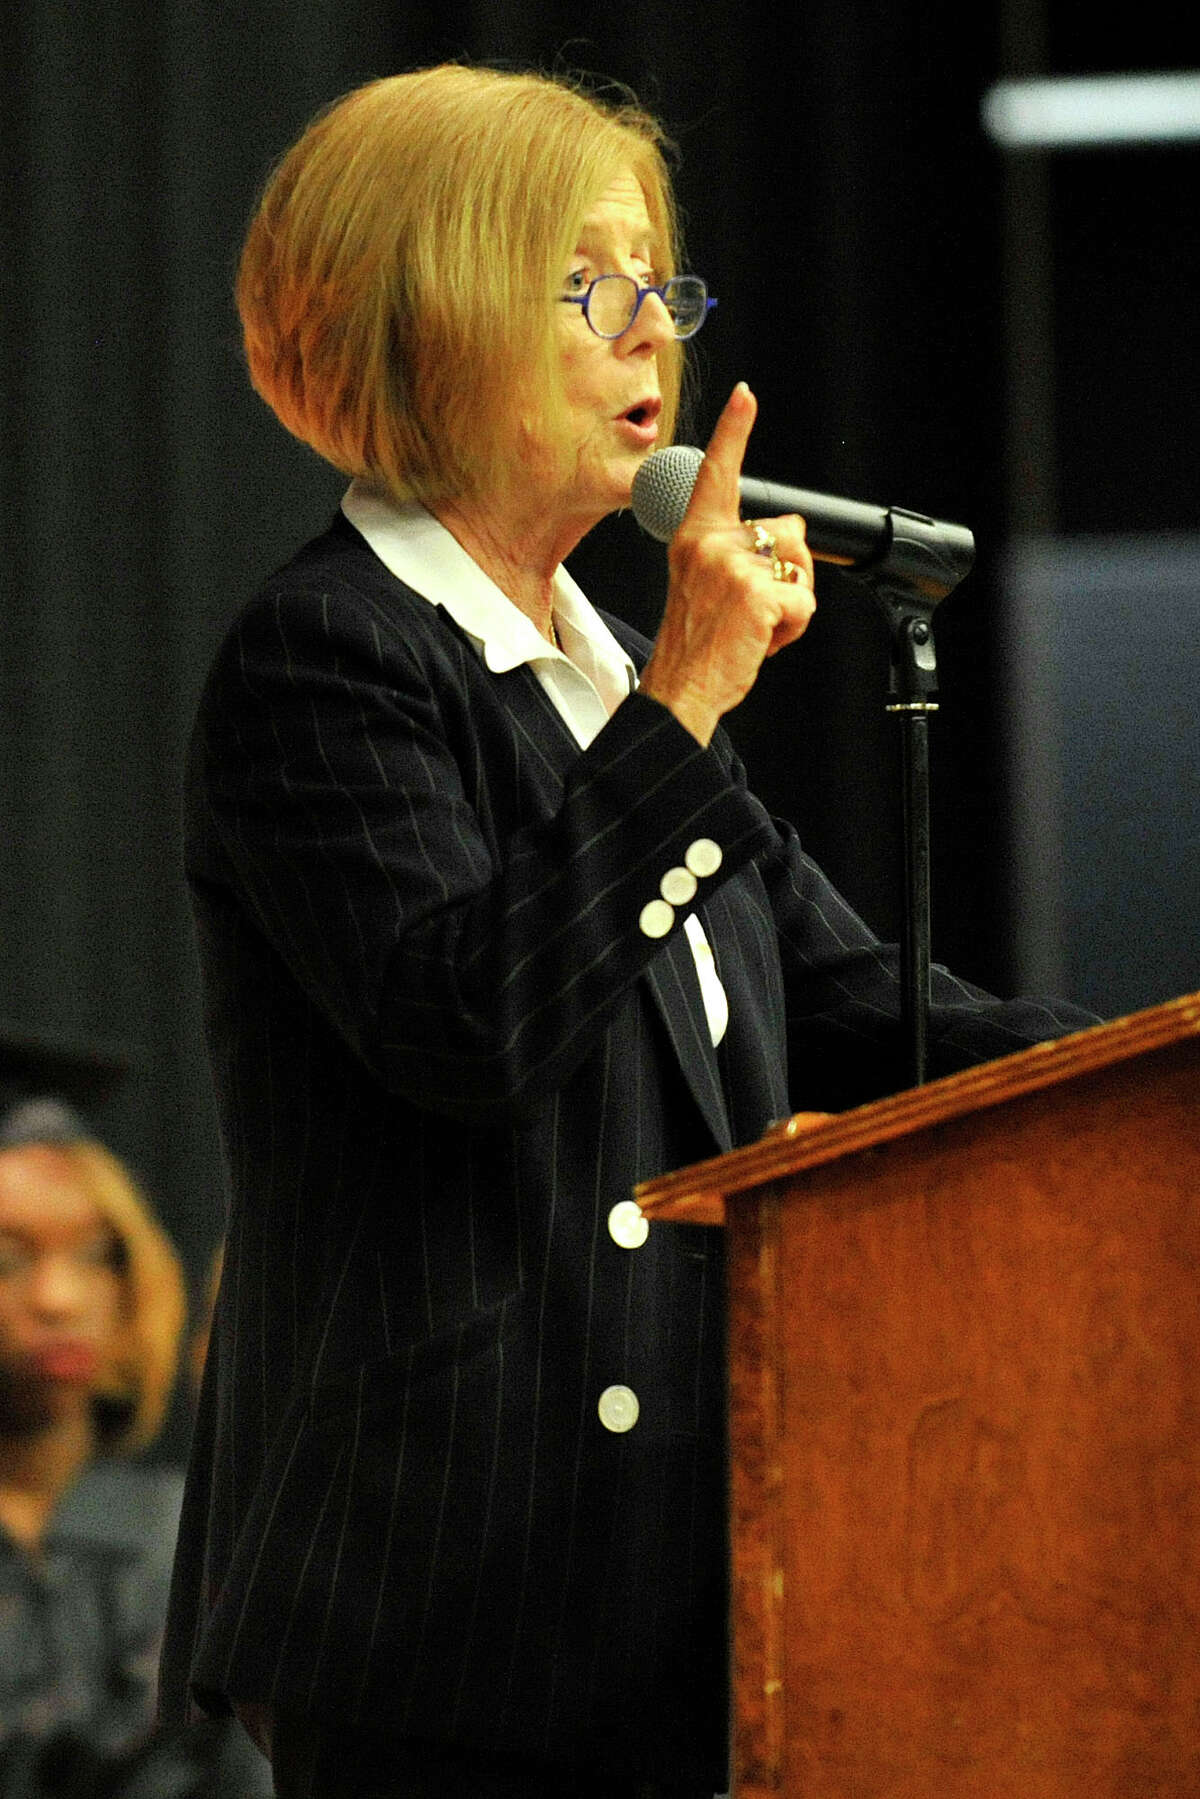 Dr. Winifred Hamilton, superintendent of Stamford Public Schools, speaks during the Stamford Public Schools Adult and Continuing Education graduation at Cloonan Middle School in Stamford, Conn., on Wednesday, June 11, 2014.